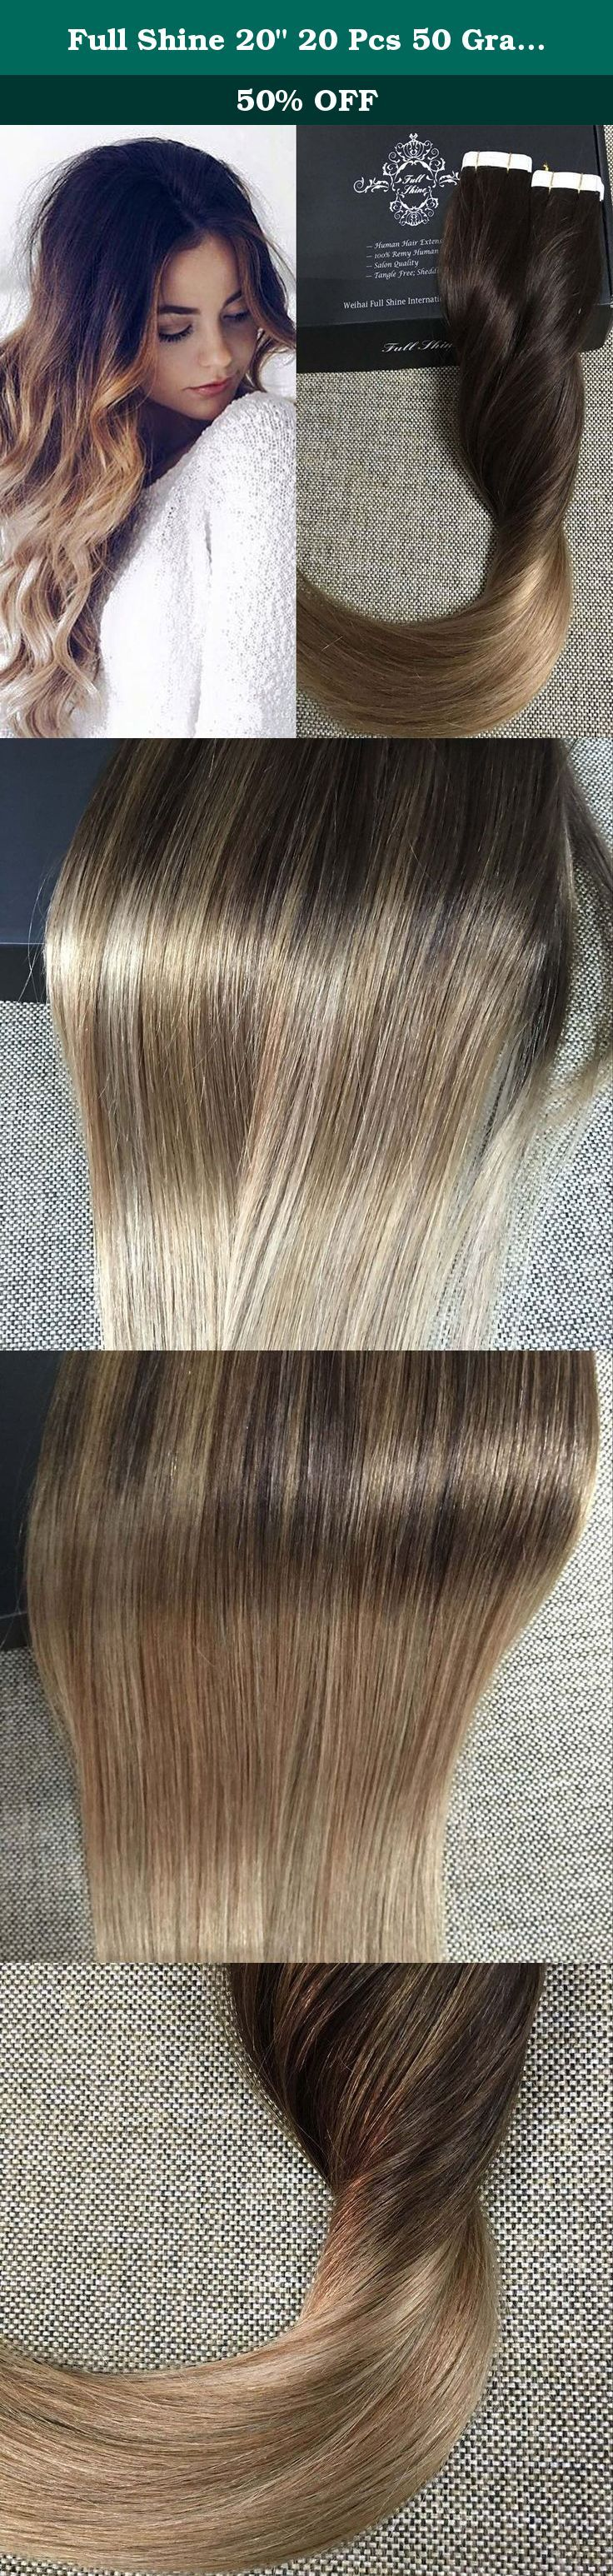 "Full Shine 20"" 20 Pcs 50 Gram #2 Dark Brown Fading to #6 Chestnut Brown to #18 Ash Blonde Remy Ombre Dip Dye Hair Extensions Glue in Hair Extensions Human Hair Double Sided Tape Hair Extensions. Full Shine tape in extensions are made with 100% remy human hair and premium hypoallergenic tape adhesive that is strong, safe, and non-damaging. Our tape extensions are made with an anti-shedding technology which feature a unique sew line on the tape weft to prevent shedding and tangling. Our…"